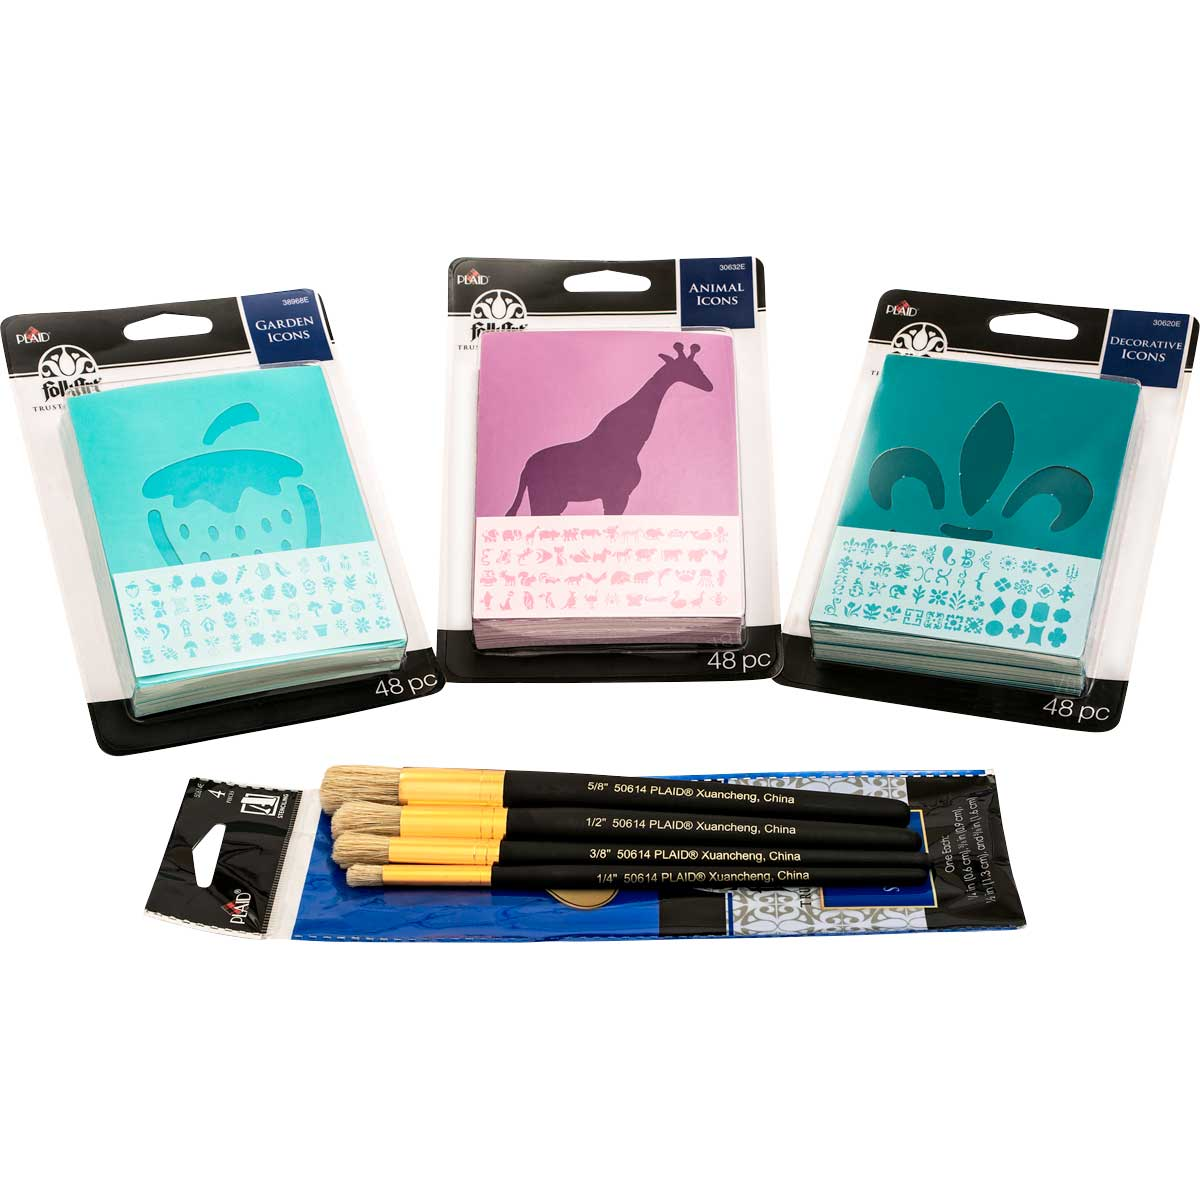 FolkArt ® Complete Paper Icon Stencil and Brush Set